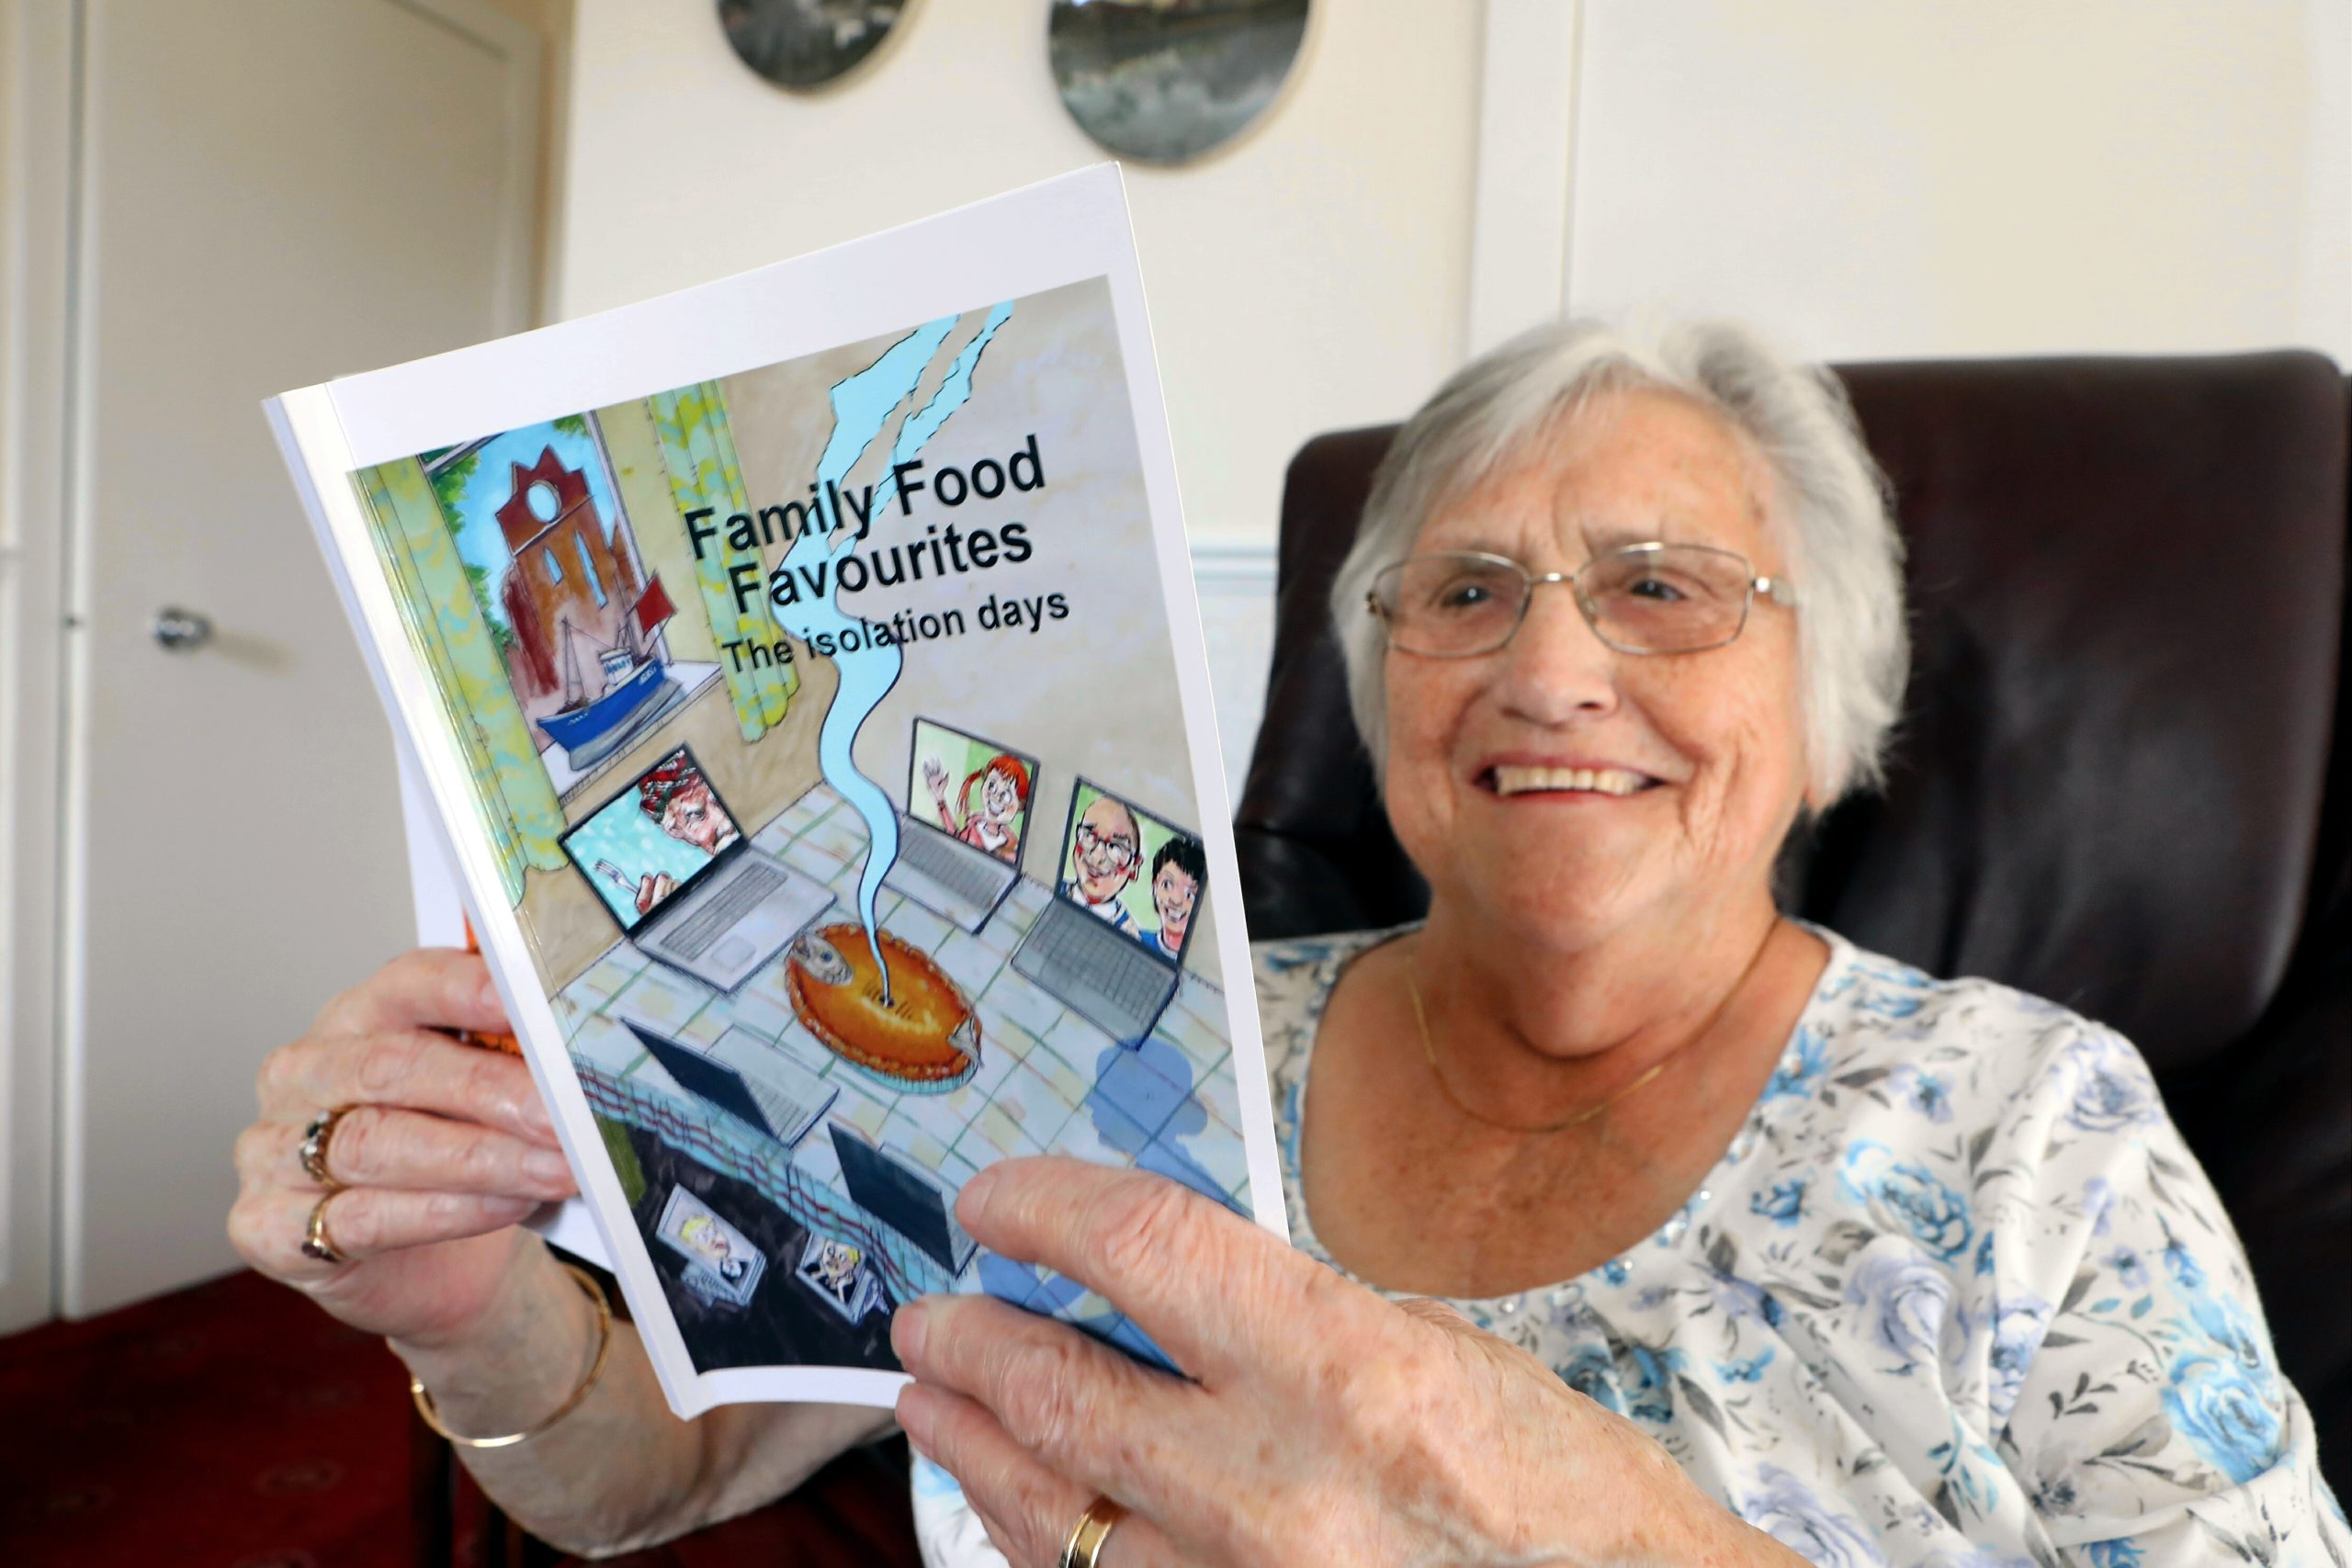 Marie Welsh of the Local People Project with the Family Food Favourites recipe book.